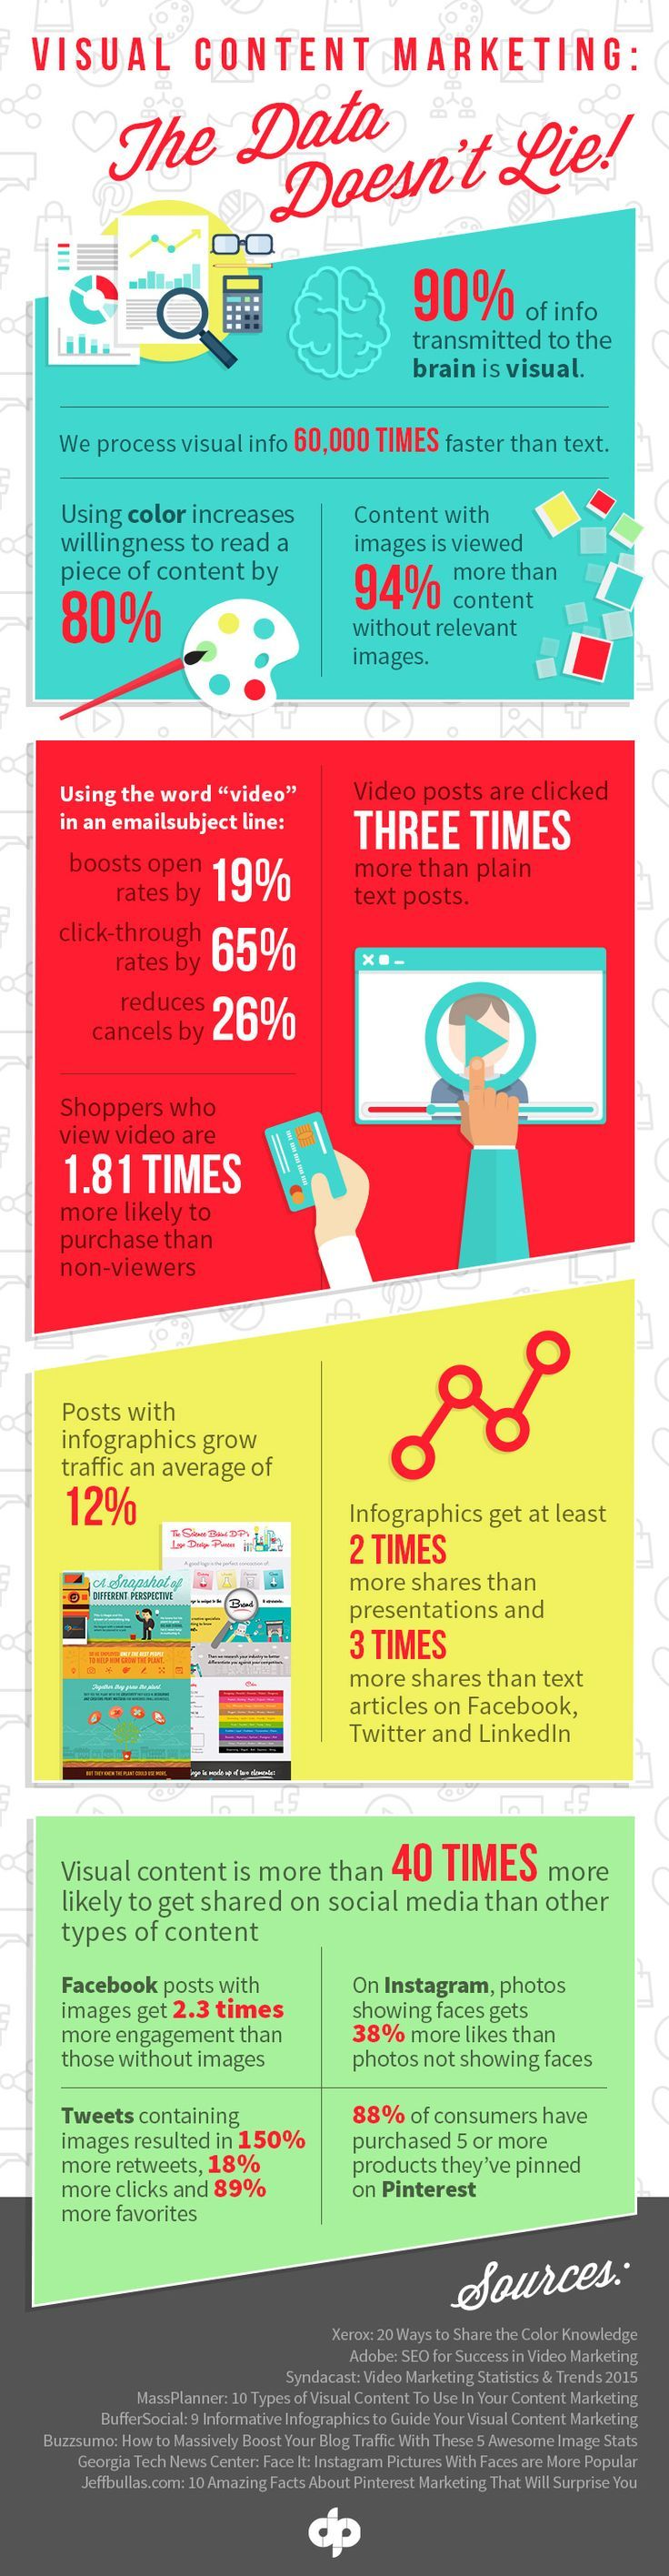 Visual Content Marketing: The Data Doesn't Lie! - infographic